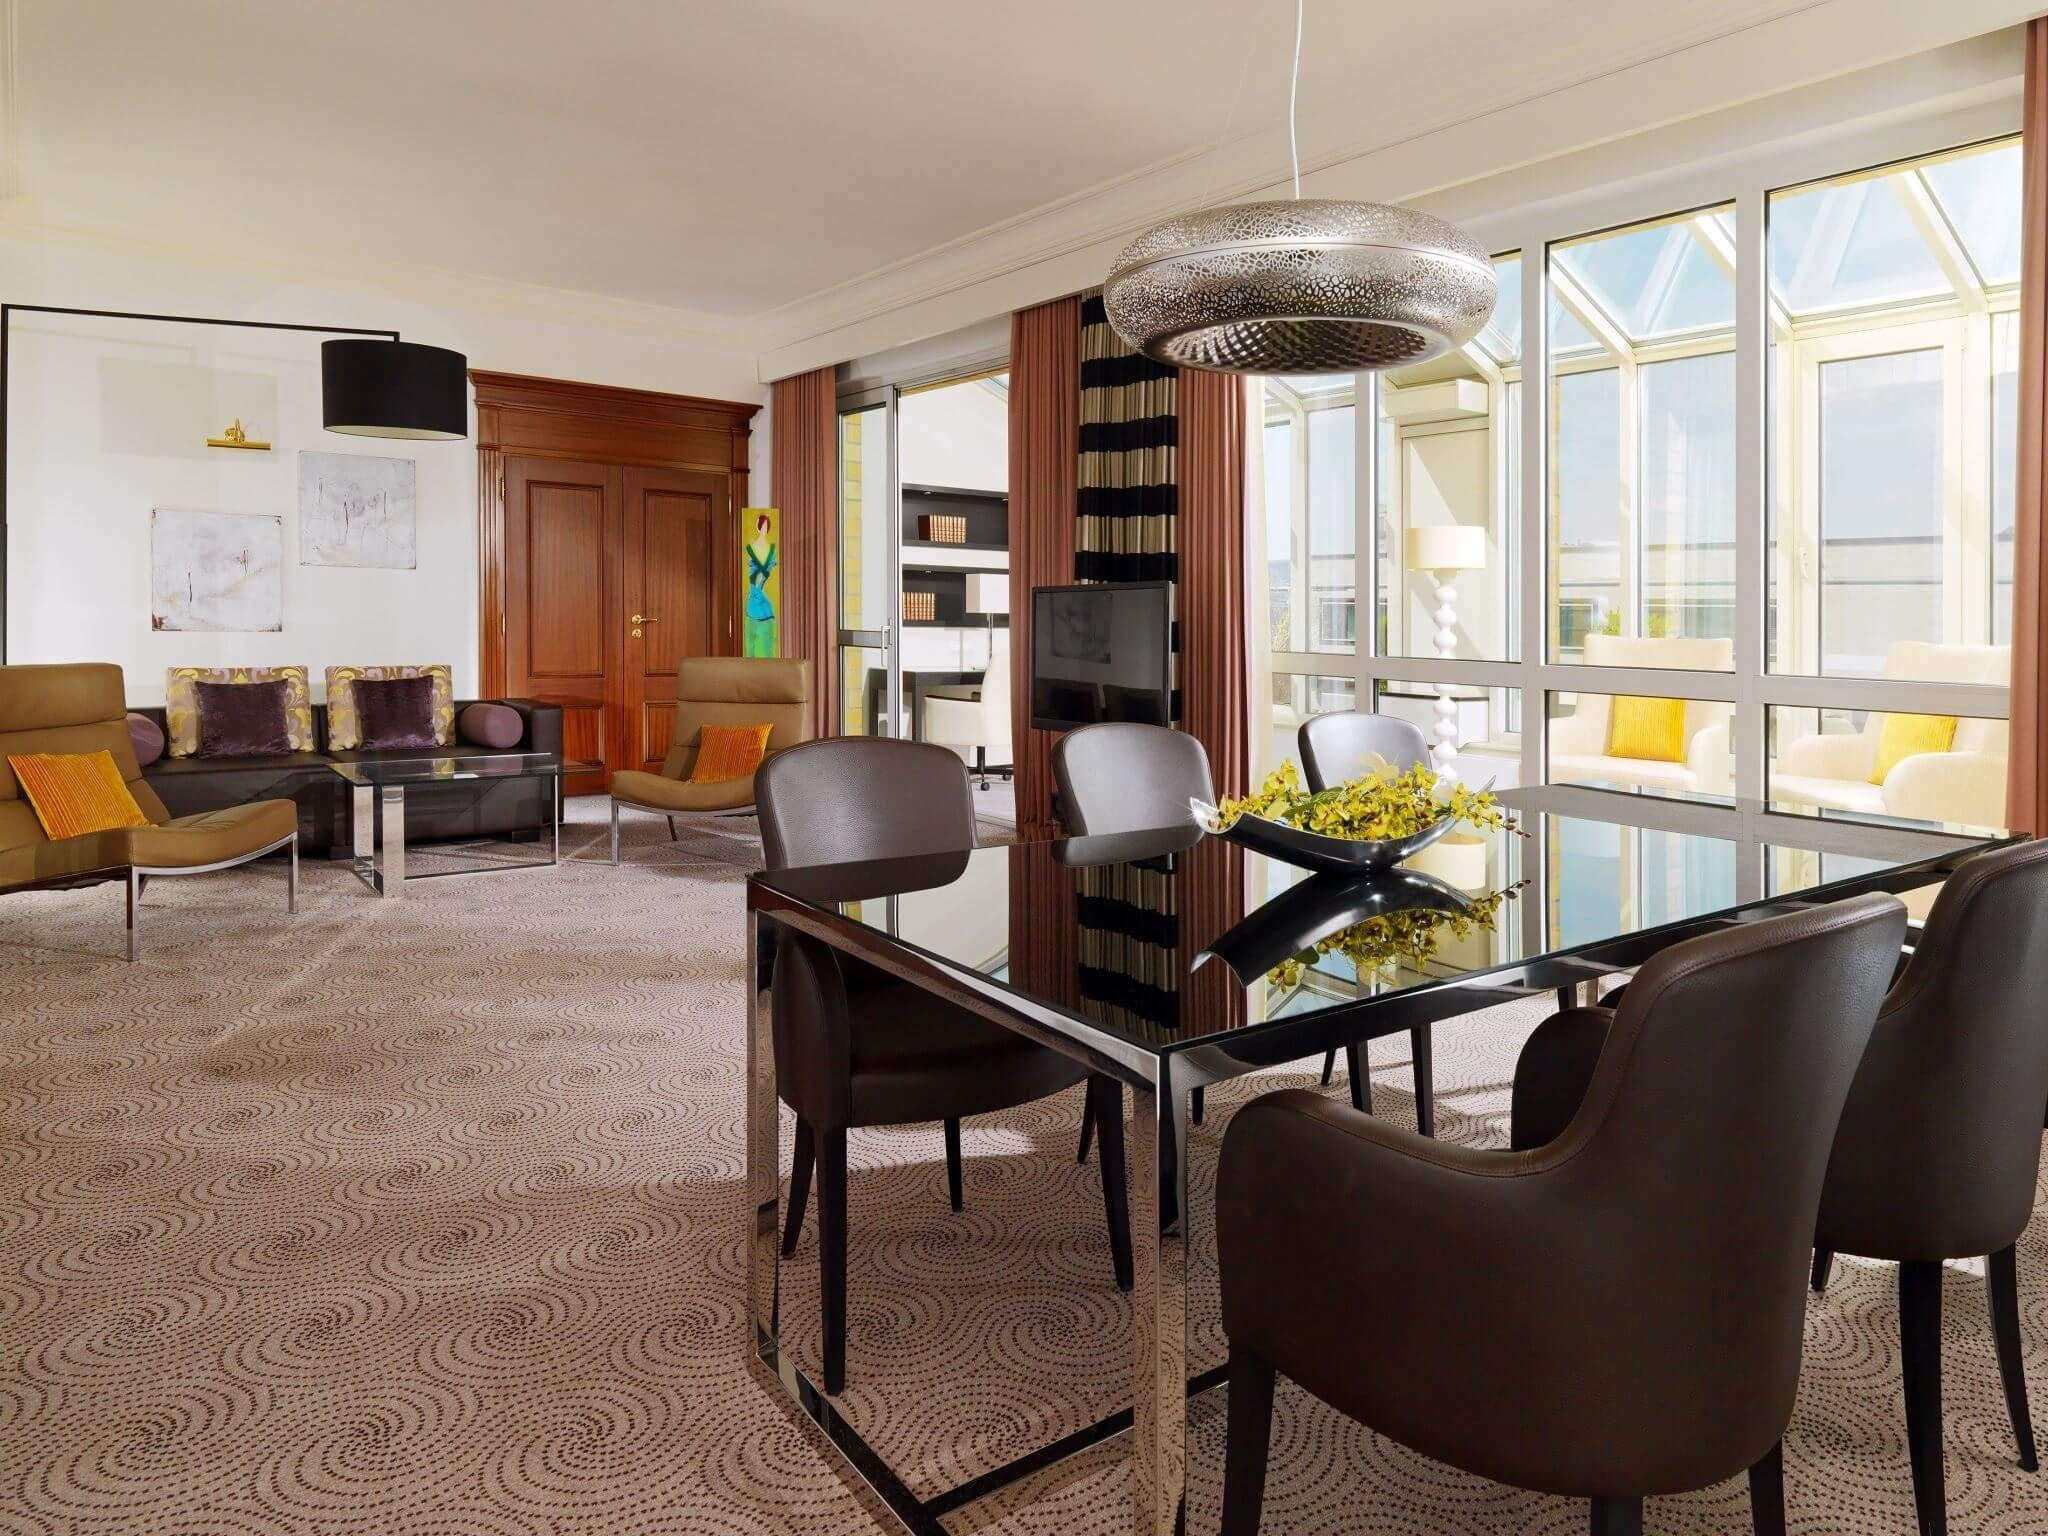 Hotel Suite Stuttgart: Diplomatic Suite at Le Méridien